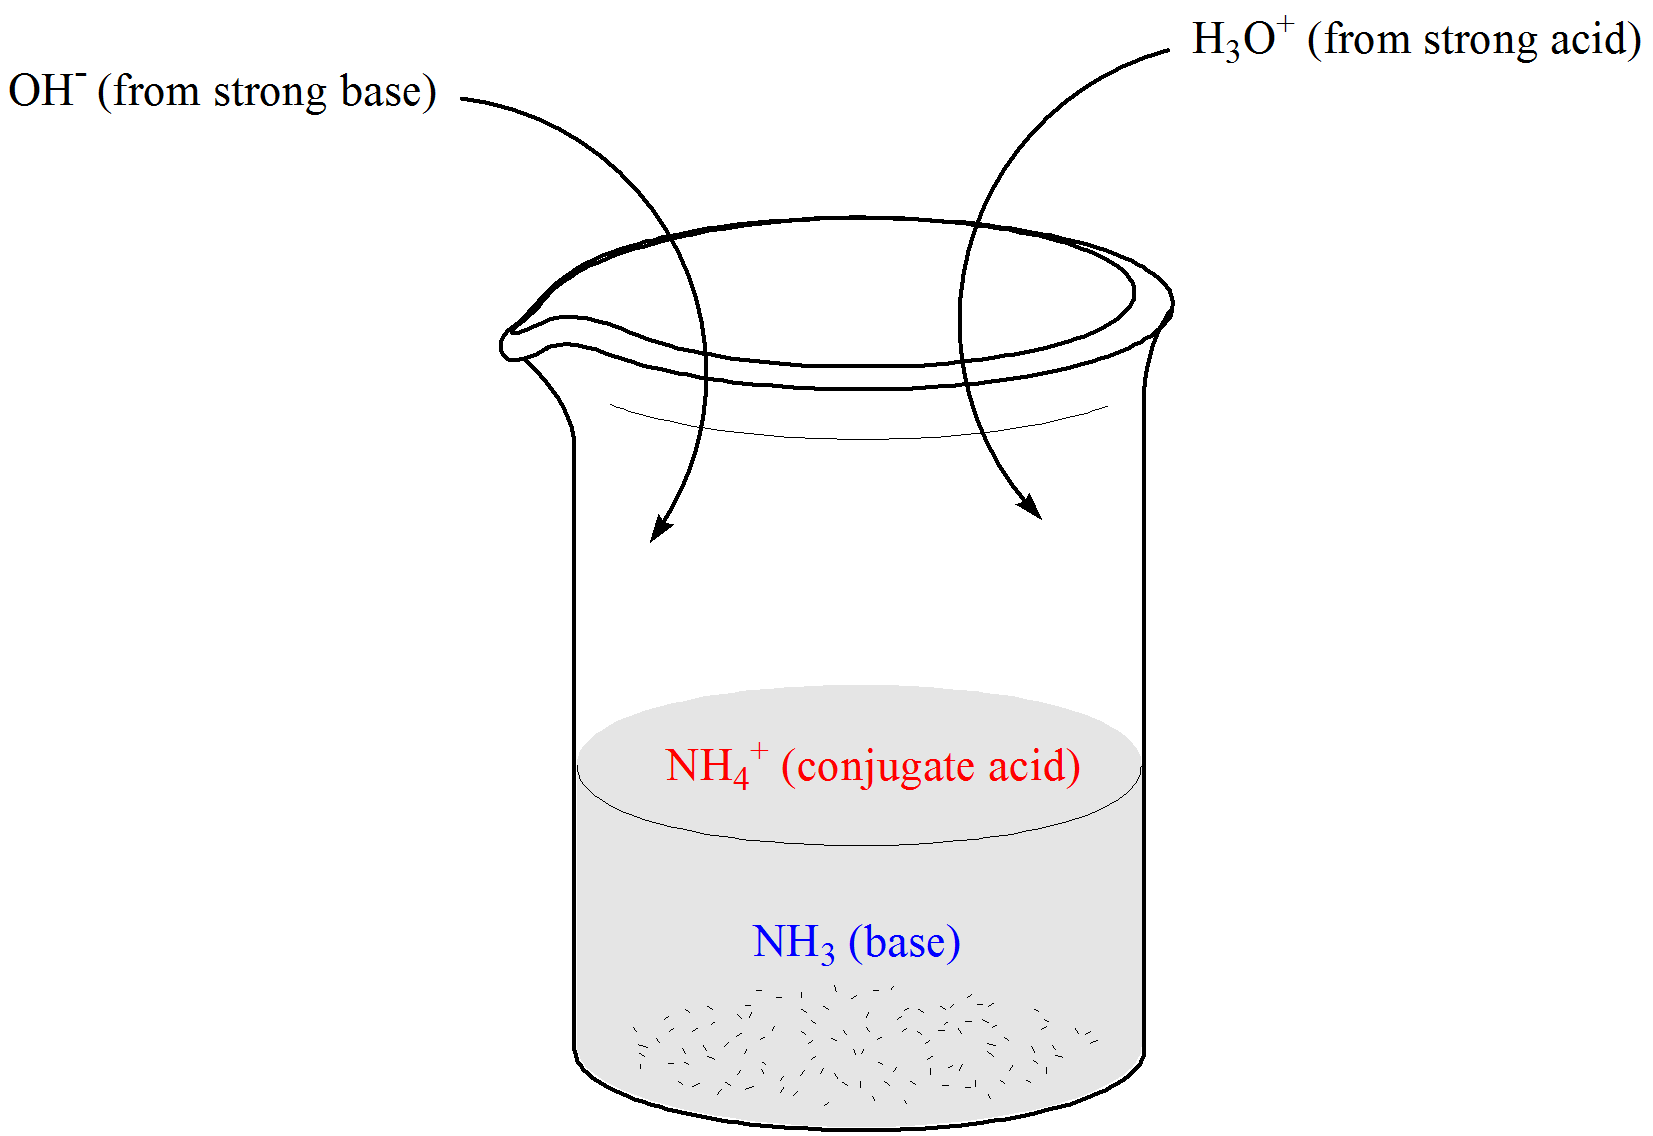 Chemistry Of Buffers And In Our Blood Article Khan Academy Now To Know The Working Principal Above Mention Units We Have Illustration Beaker Containing Weak Base Nh3 Its Conjugate Acid Ammonium Ion